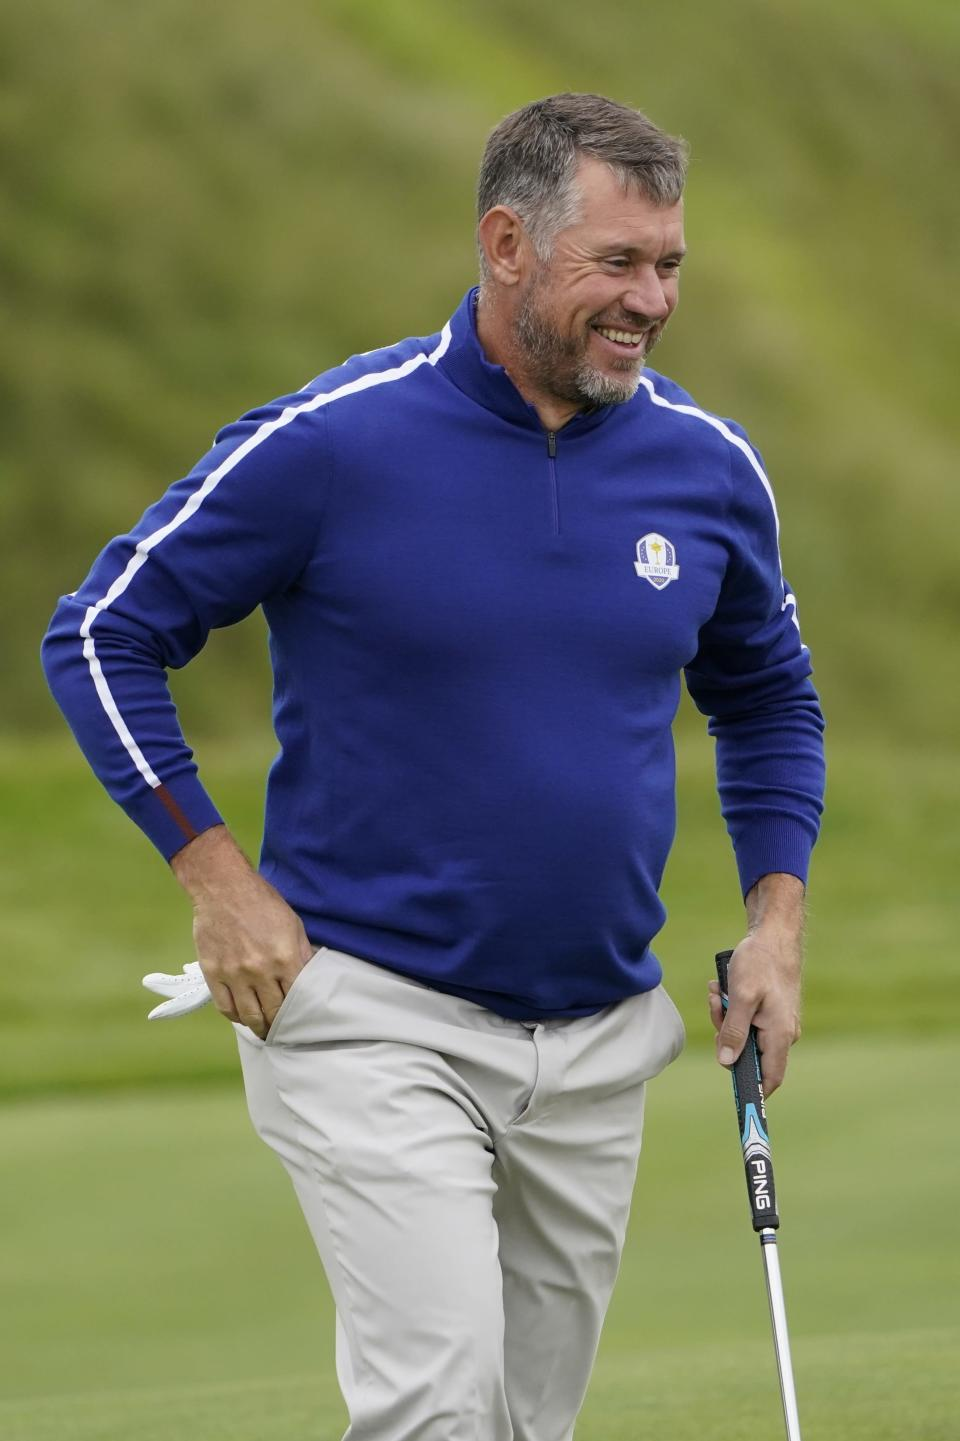 Team Europe's Lee Westwood smiles as he putts on the 11th hole during a practice day at the Ryder Cup at the Whistling Straits Golf Course Tuesday, Sept. 21, 2021, in Sheboygan, Wis. (AP Photo/Jeff Roberson)